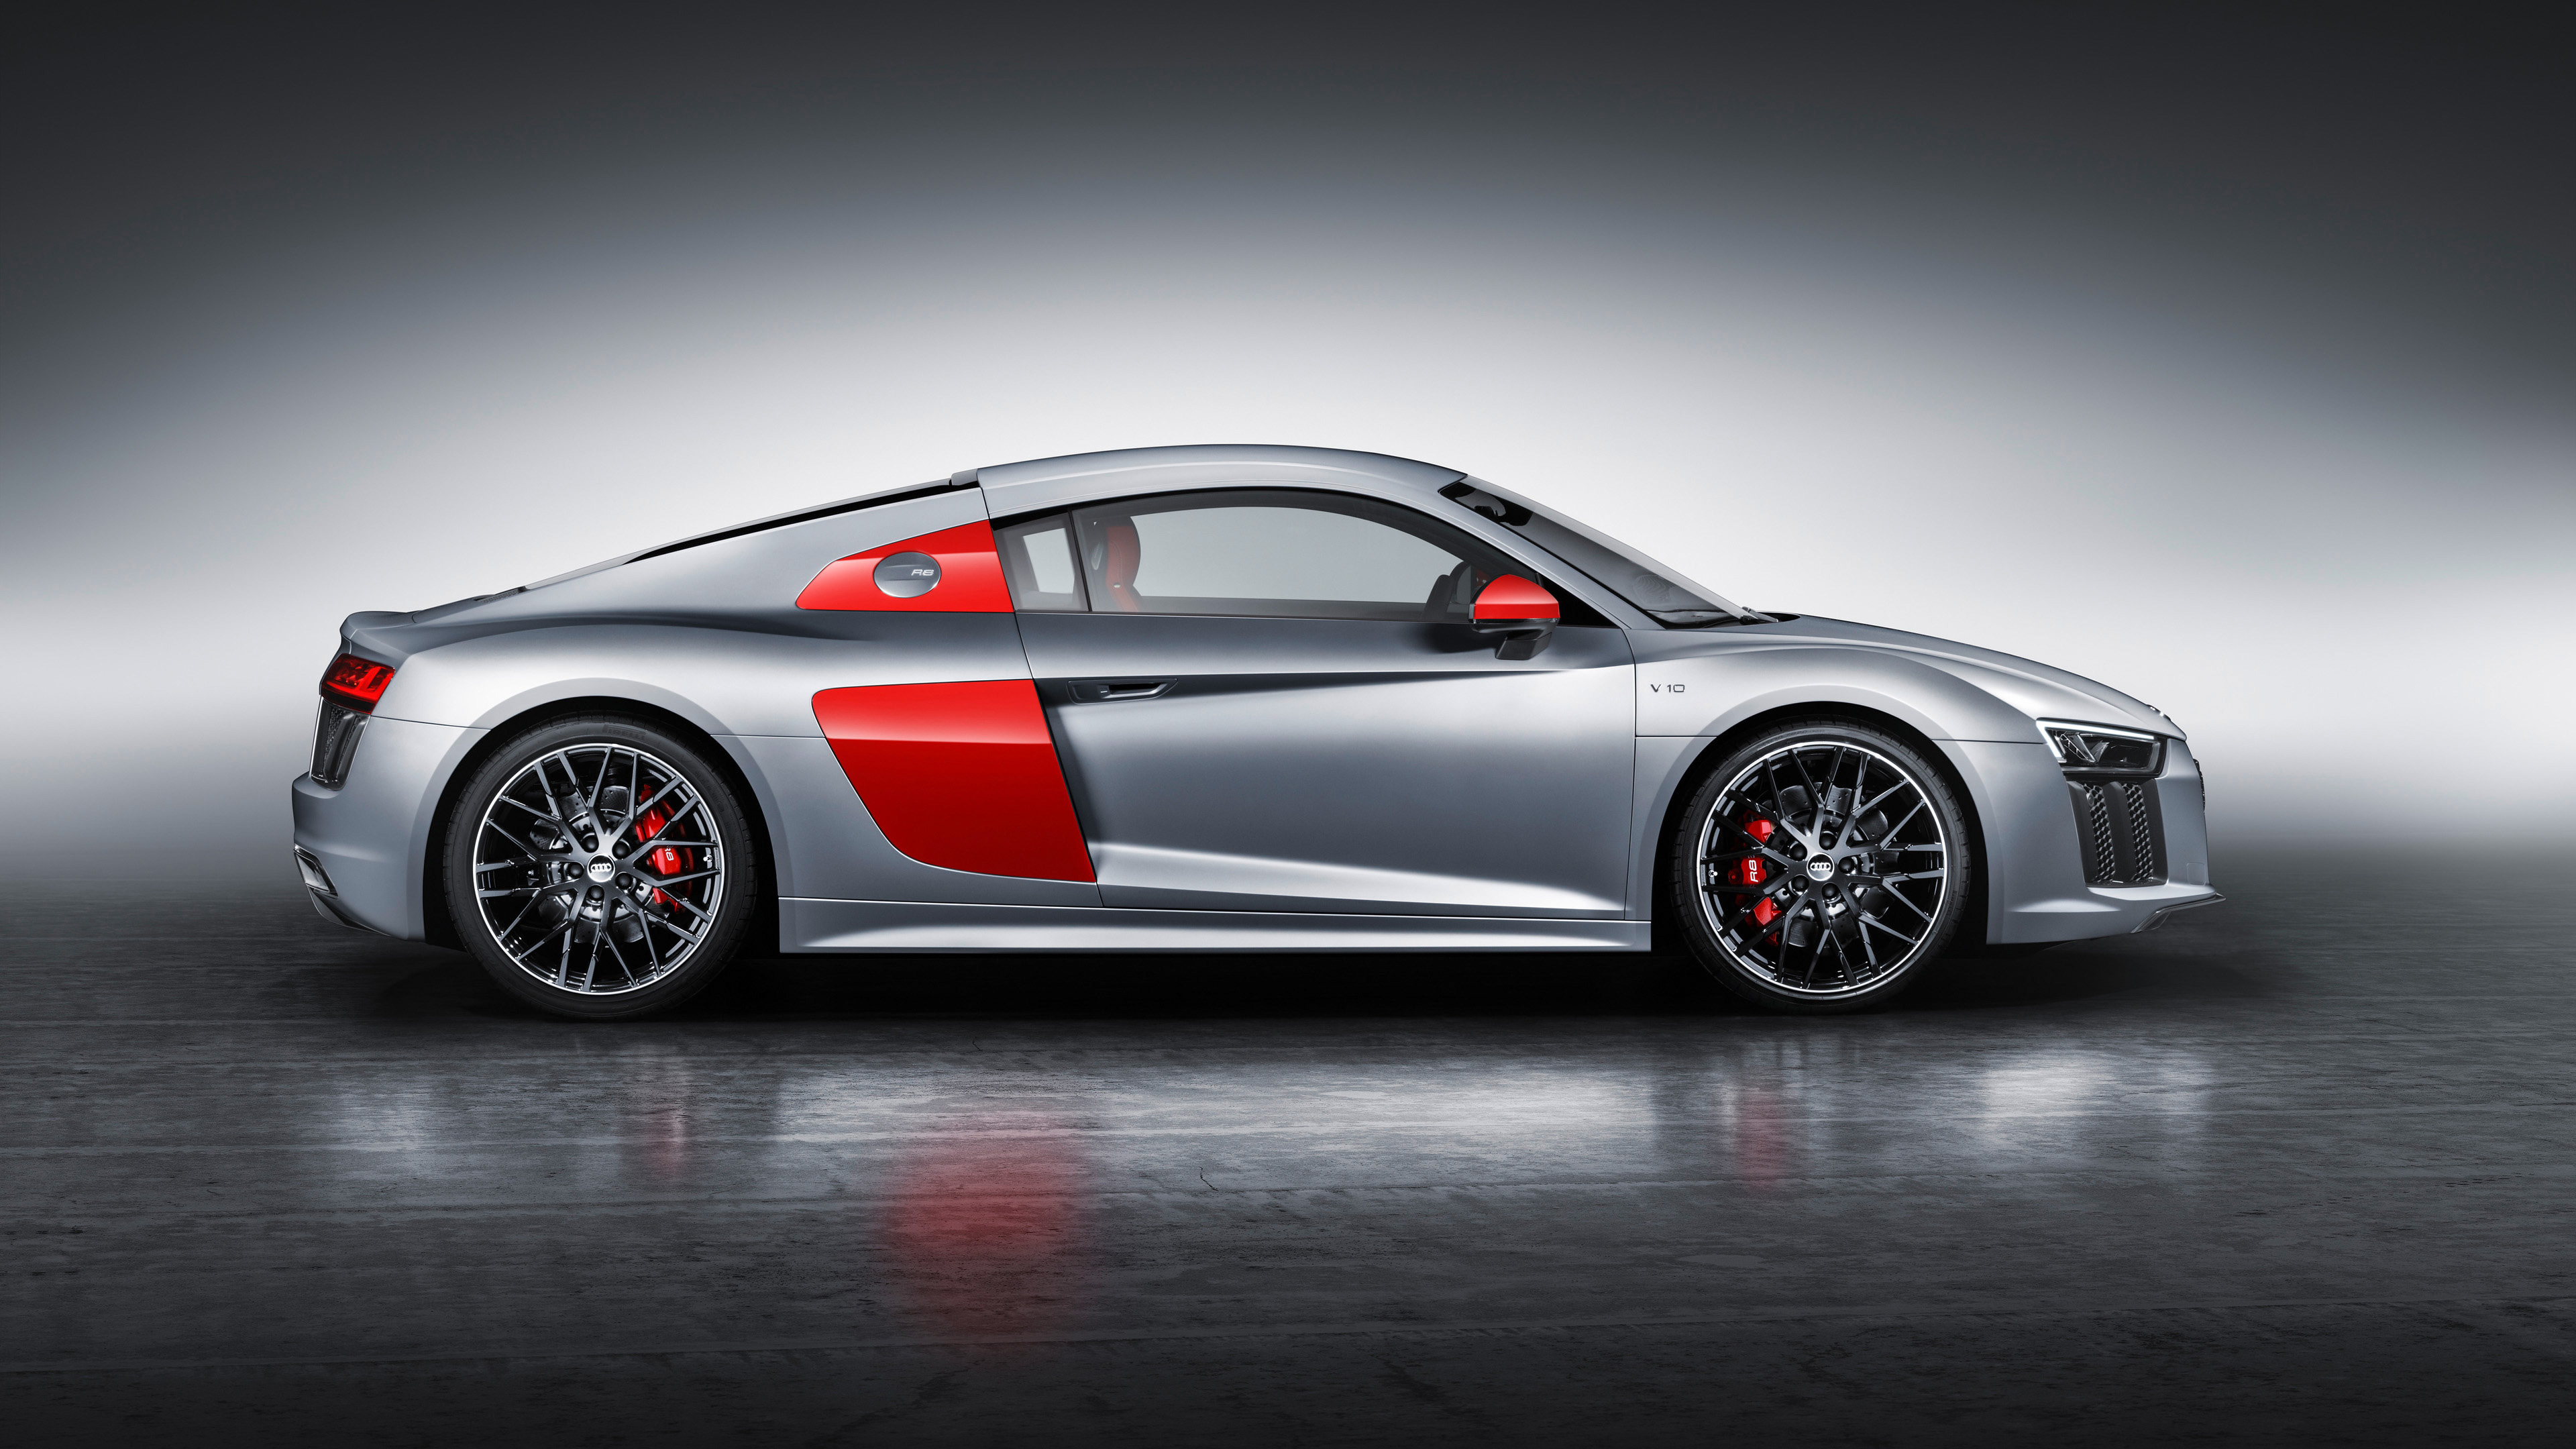 2018 audi r8 coupe sport edition 3 wallpaper hd car wallpapers id 8163. Black Bedroom Furniture Sets. Home Design Ideas